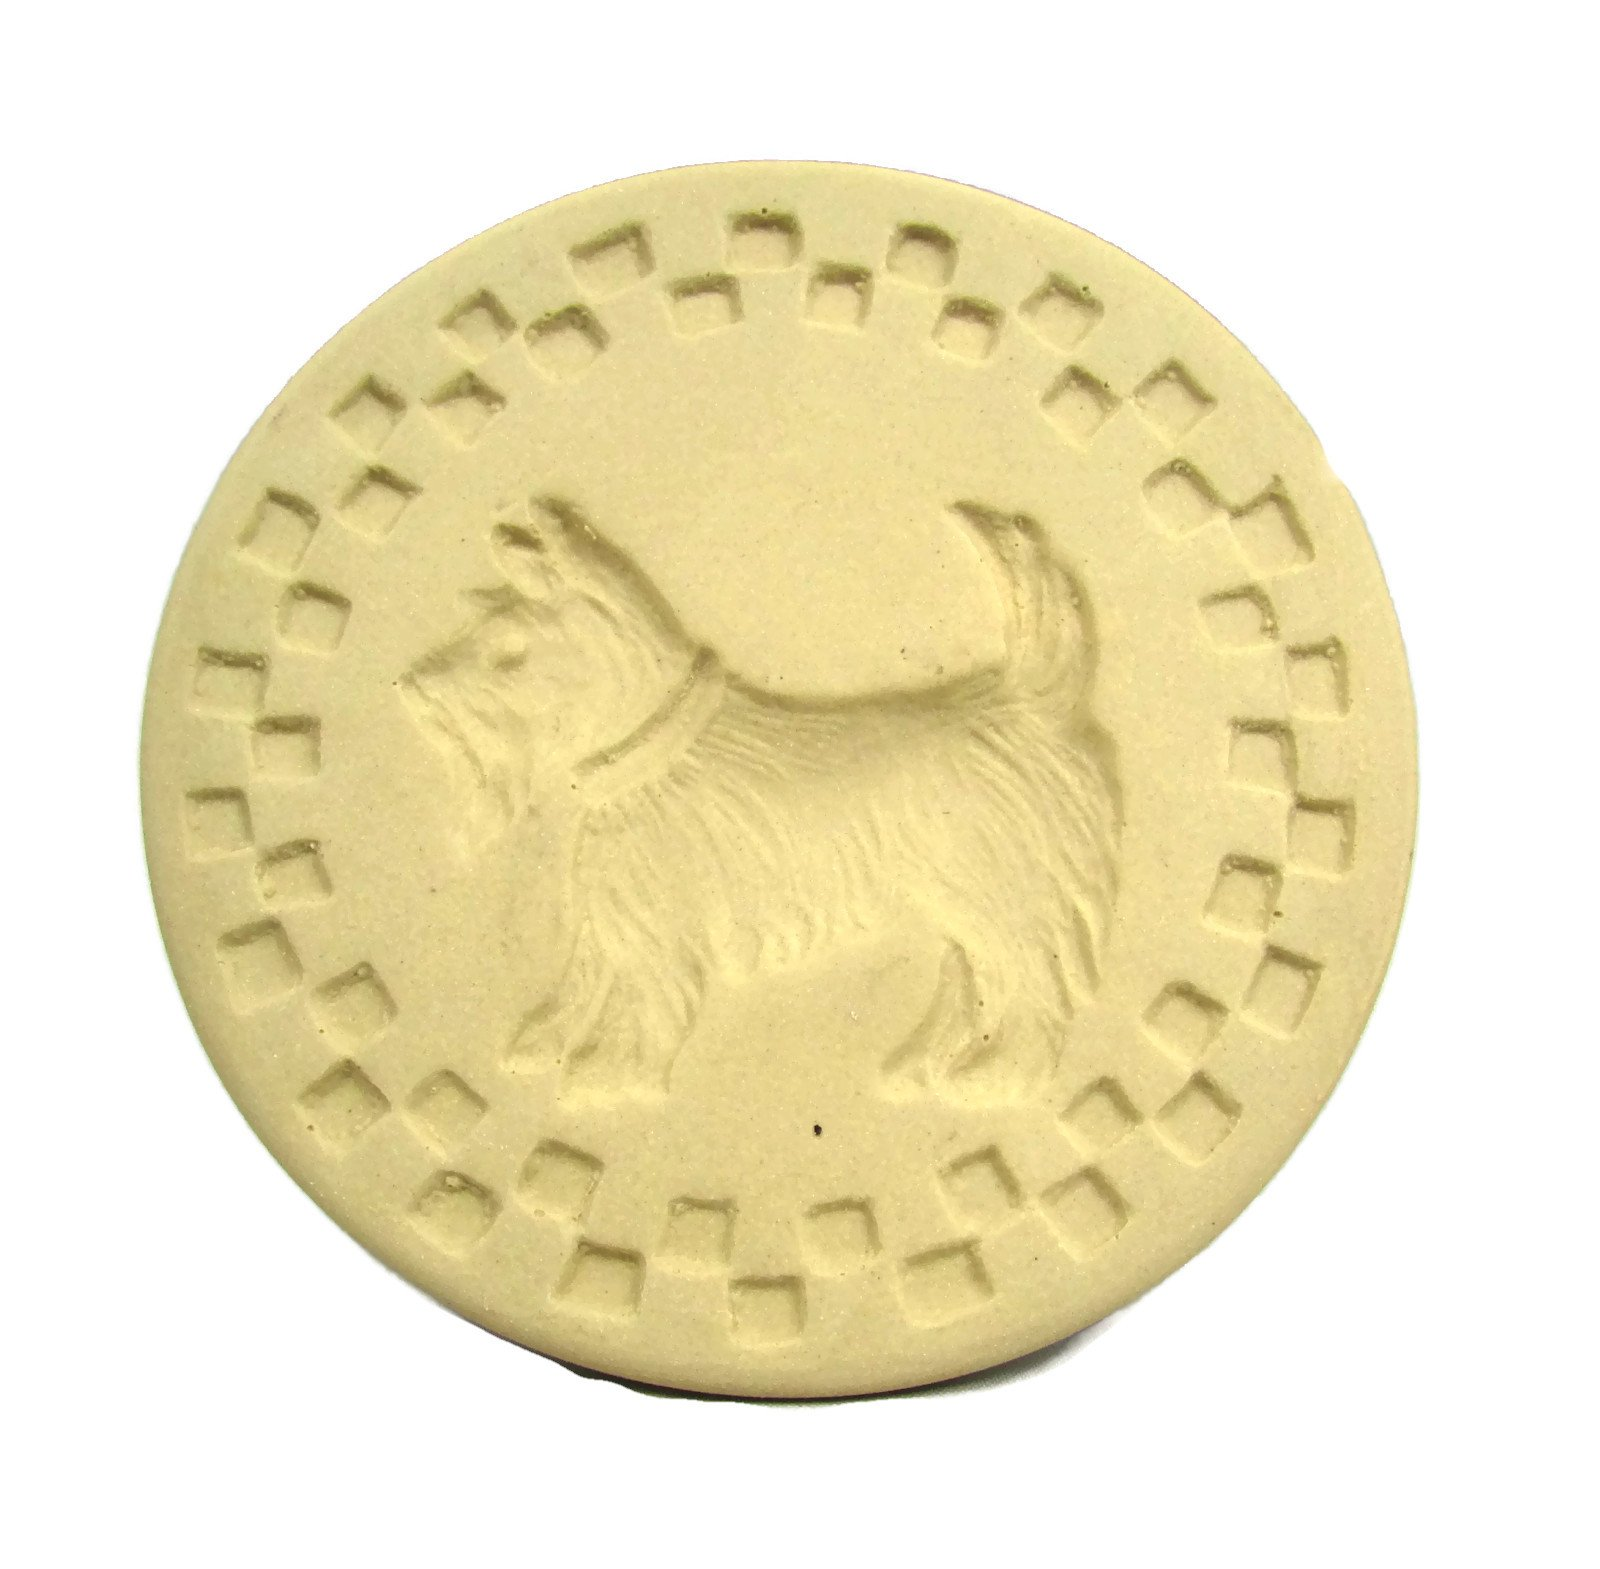 Brown Bag Scotty Dog Cookie Stamp - New 2014